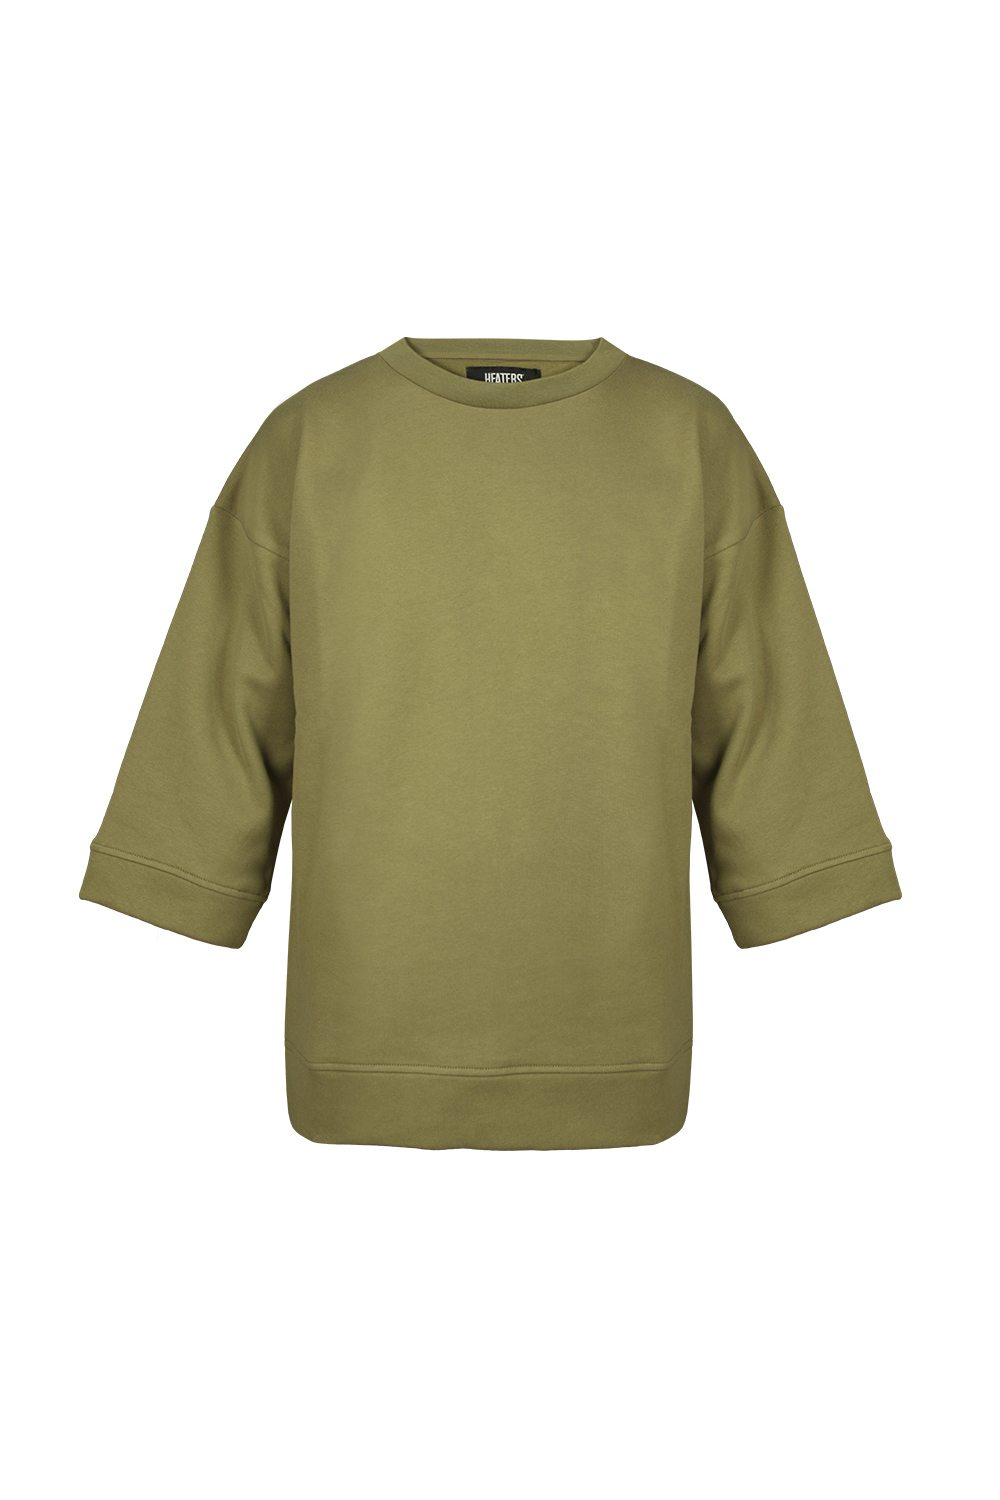 GLADIATOR SWEATER BURNT OLIVE